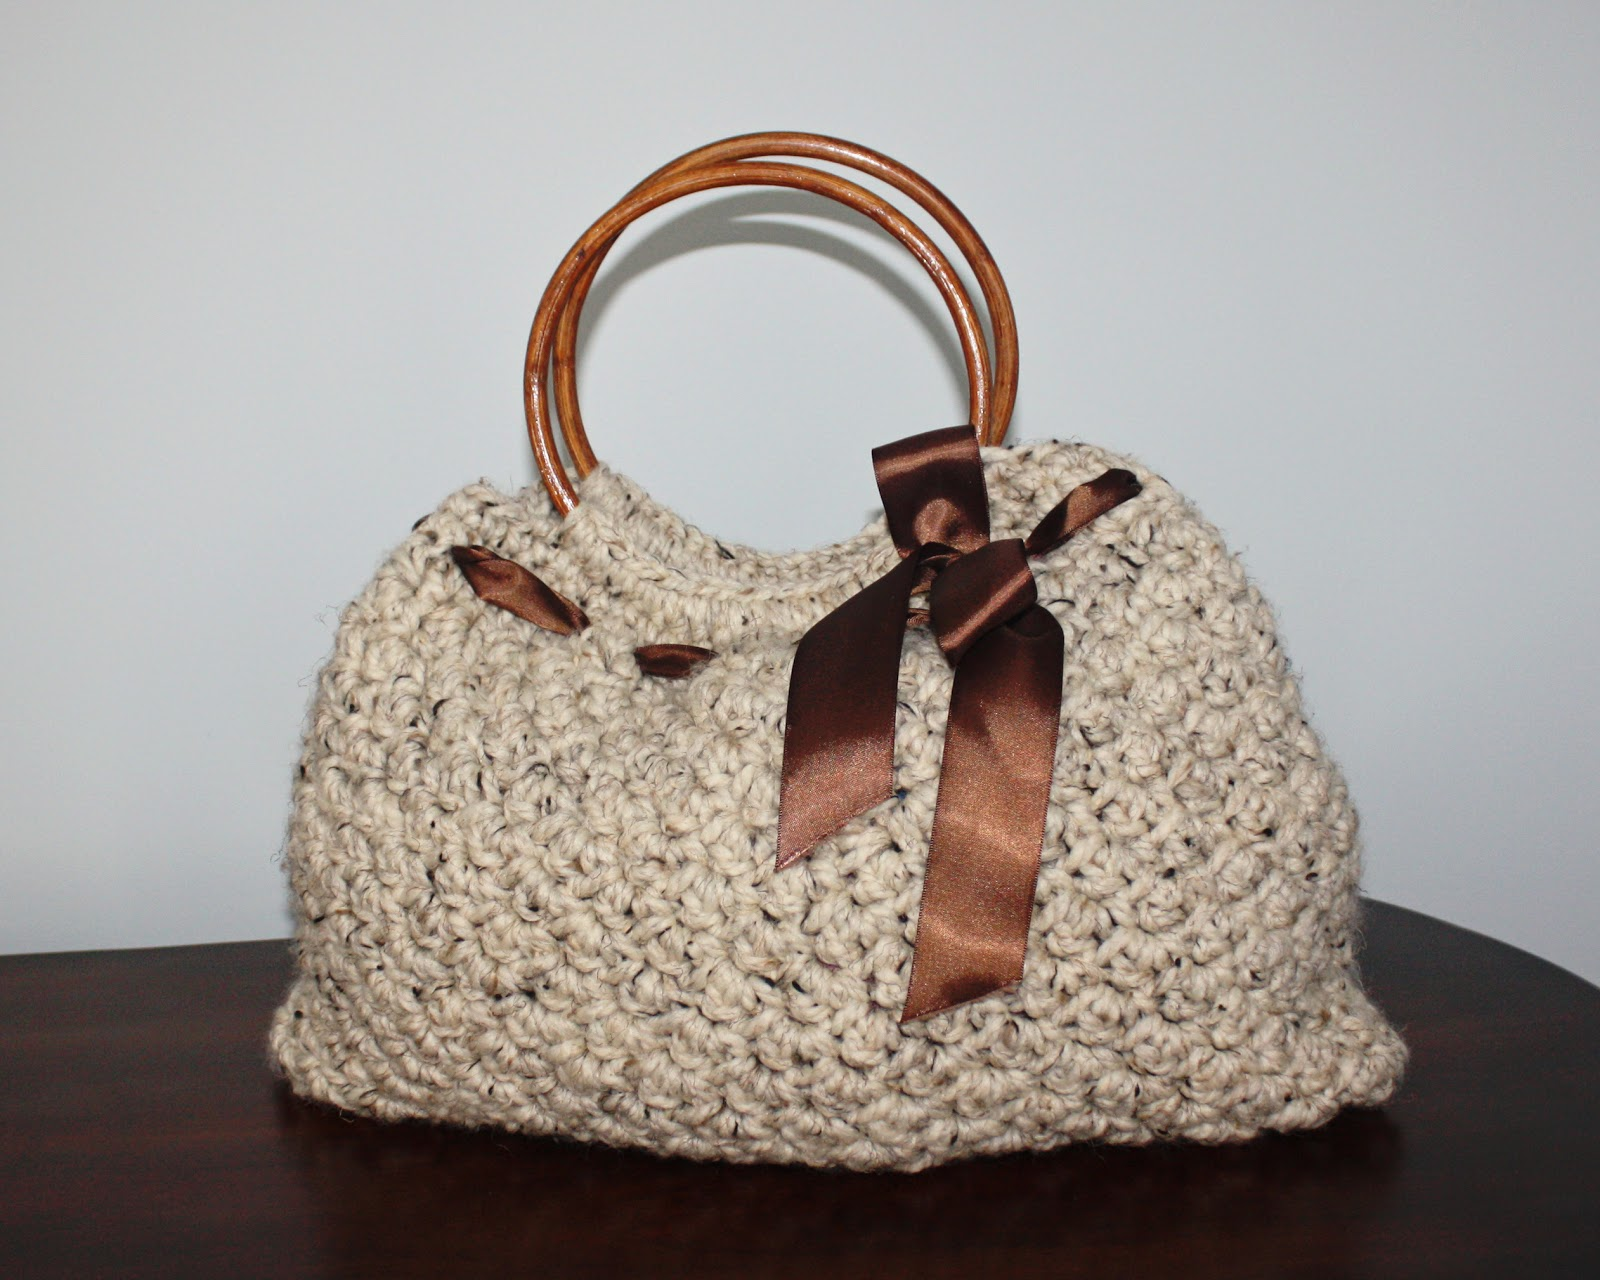 Free Patterns For Purses And Bags : Anyway now I am offering this free crochet handbag pattern to you. I ...